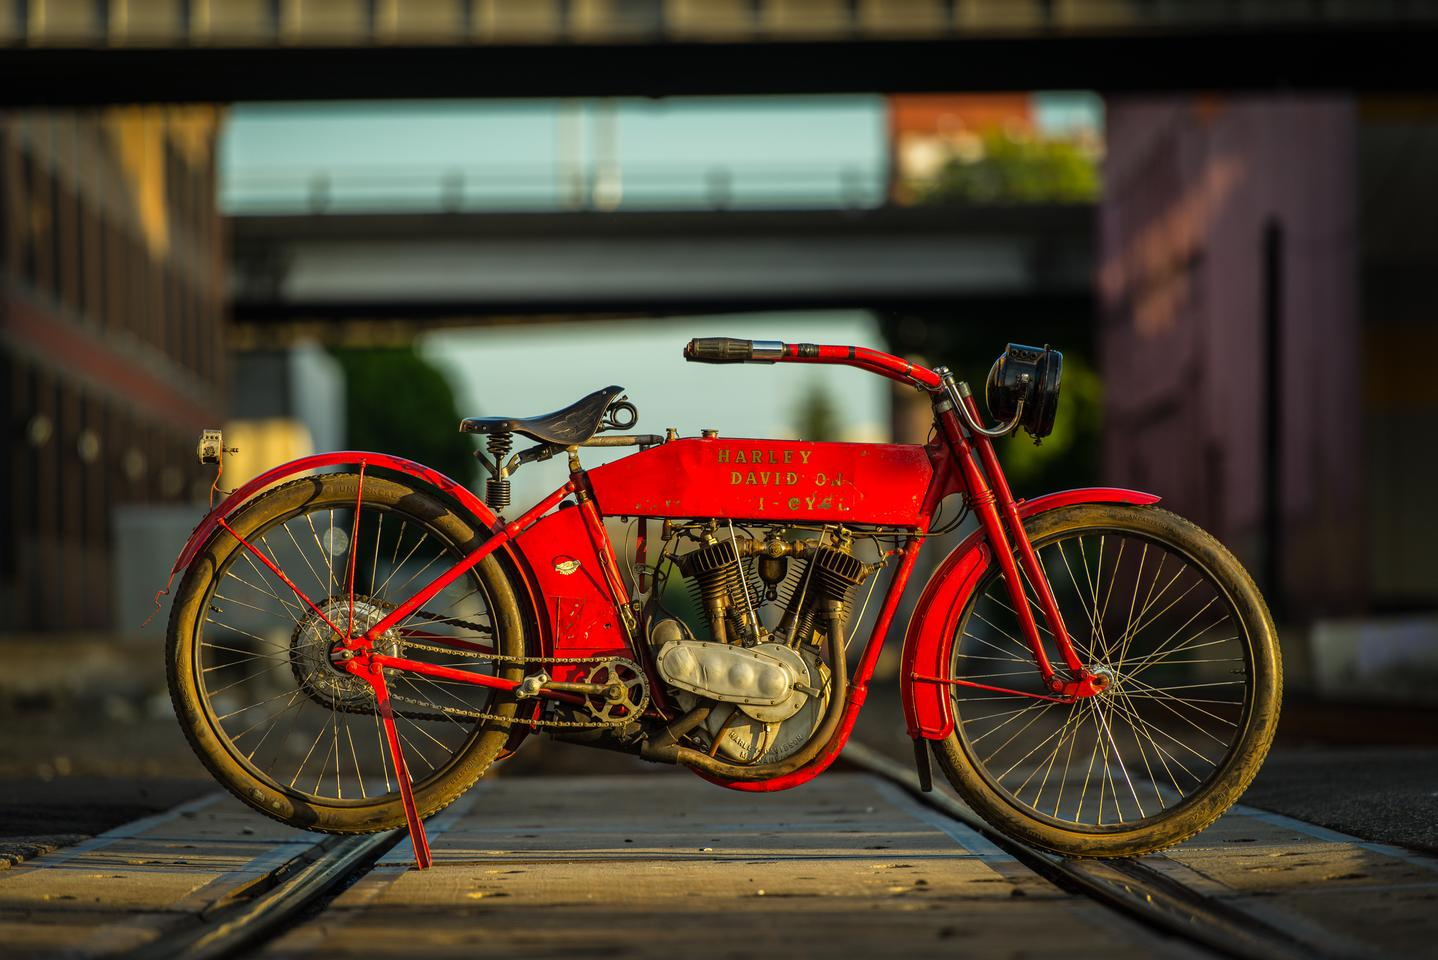 This ex-McQueen matching-numbers 1912 Harley-Davidson X8E Big Twin was purchased at the 1984 Steve McQueen estate auction and comes with a certificate of authenticity. It is believed that McQueen rode this Harley in at least one Pre-1916 event.